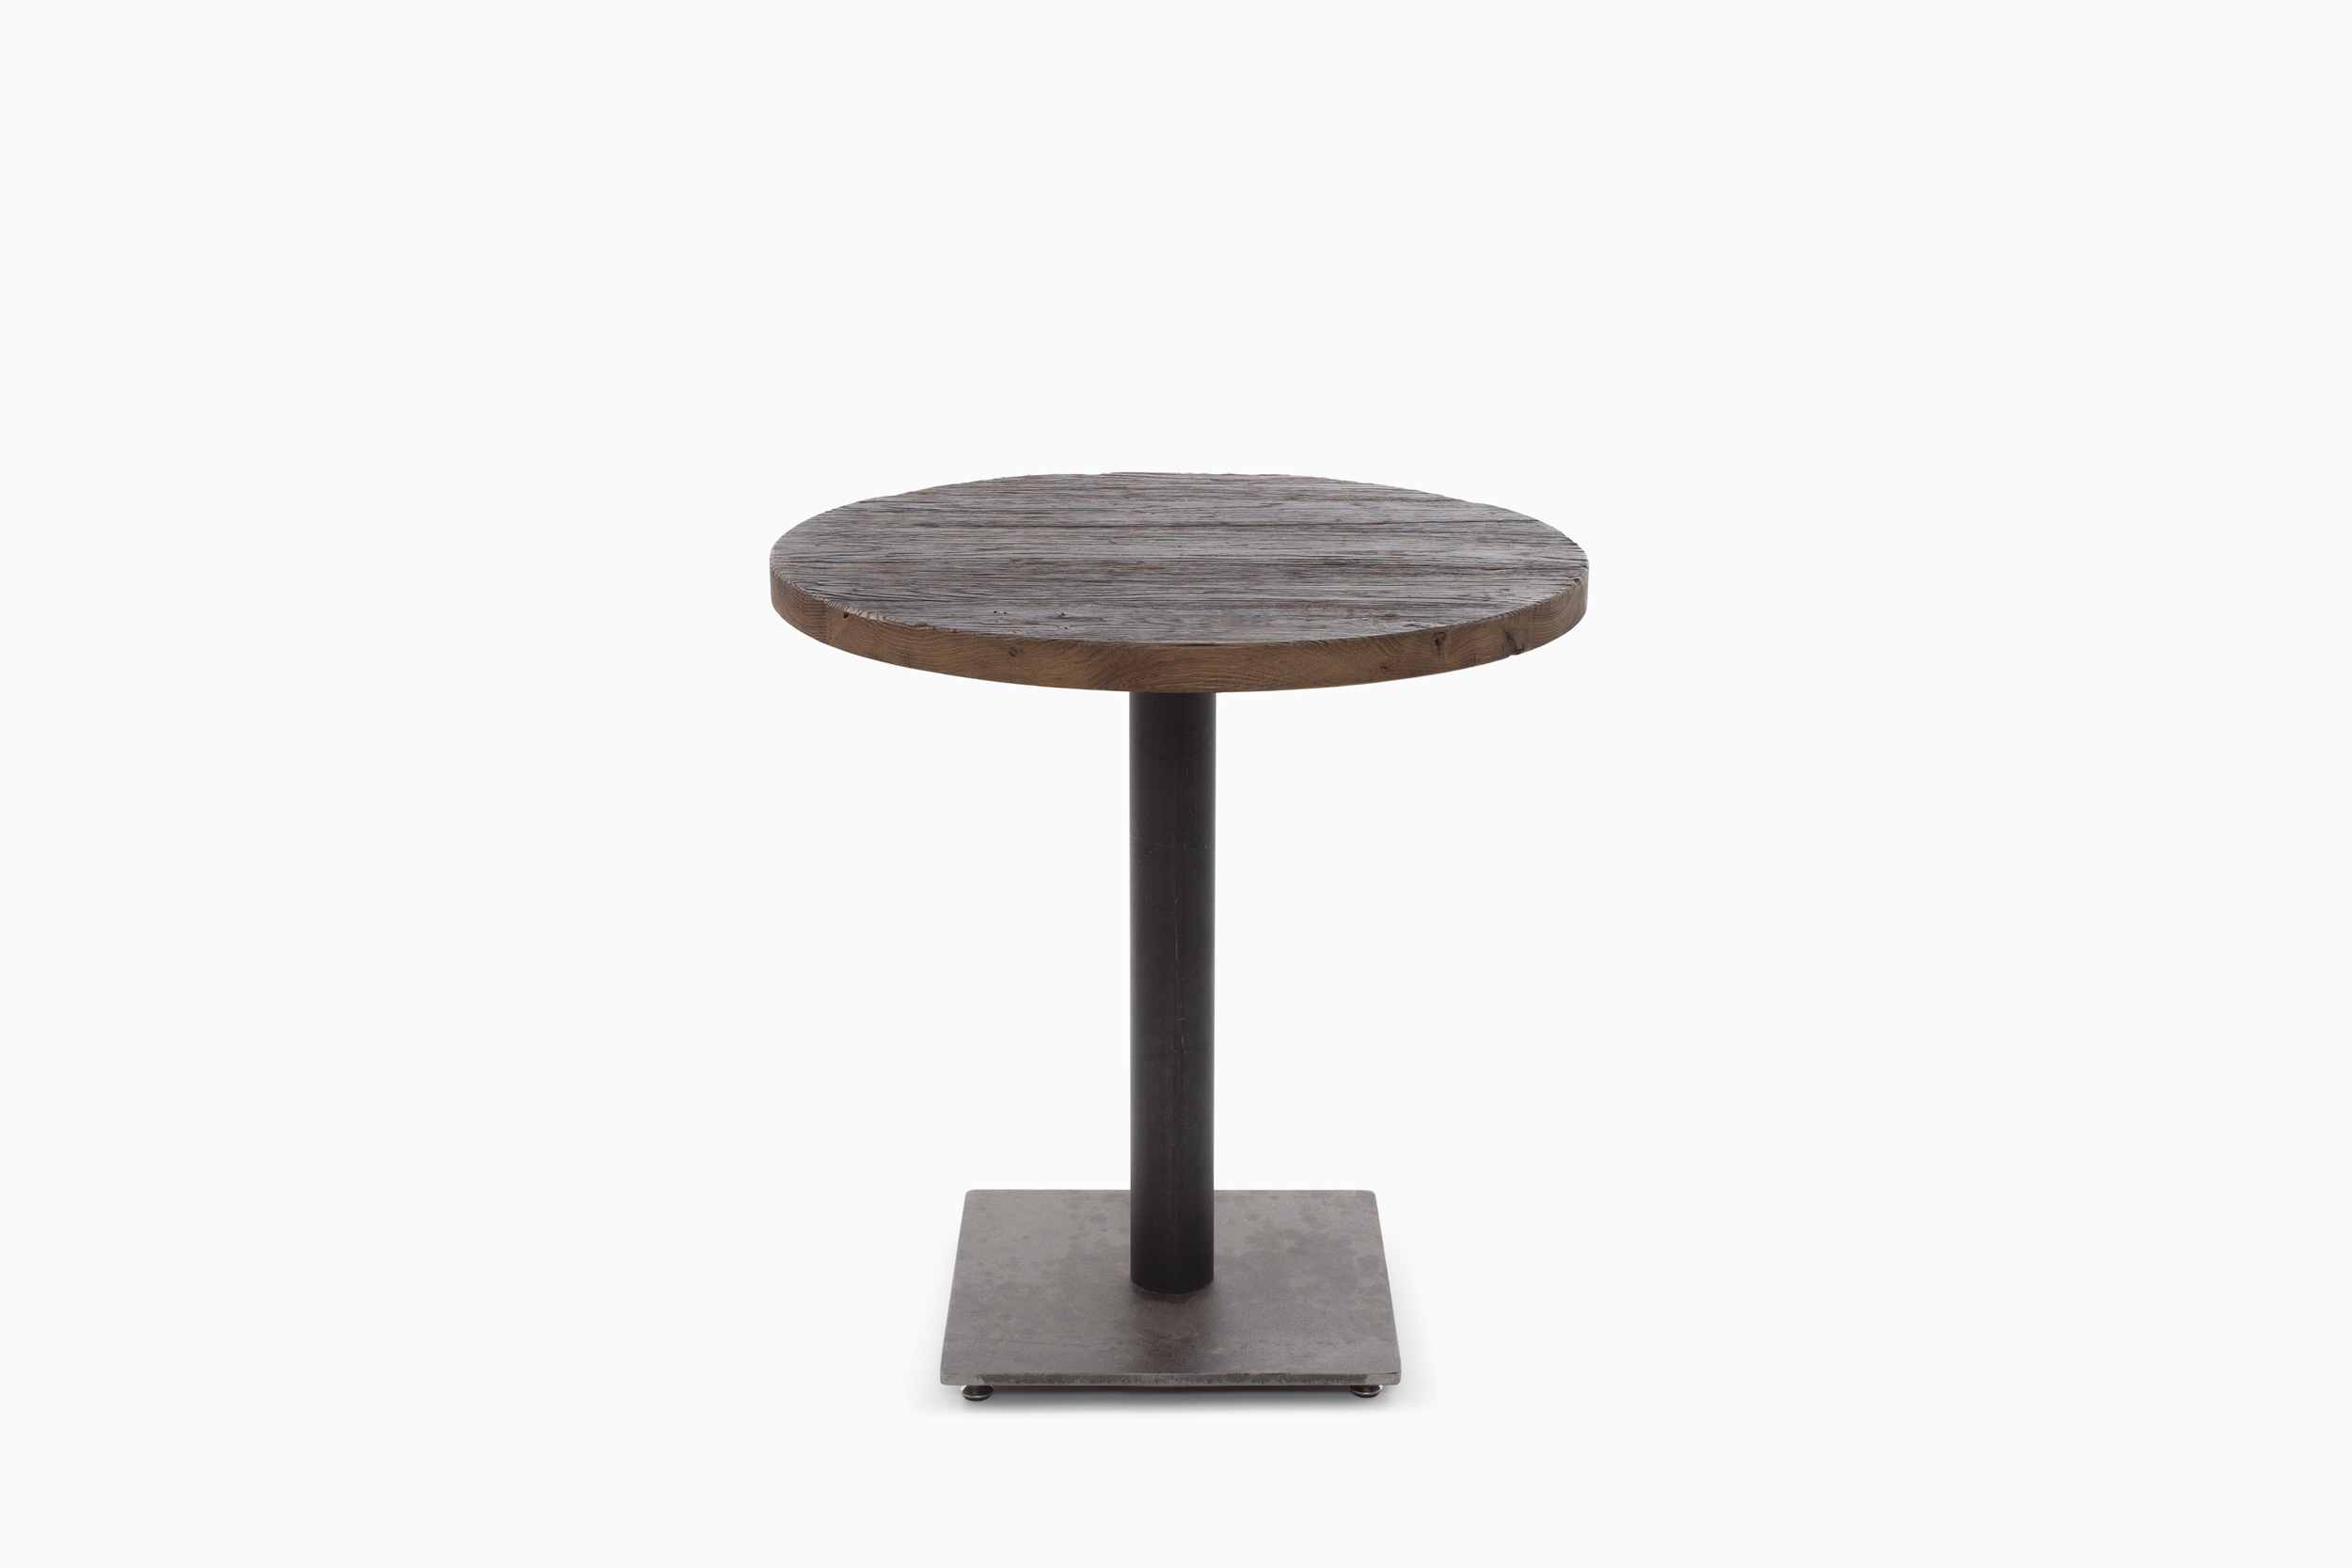 TIMBER_TABLE_BISTROT_01.01.jpg